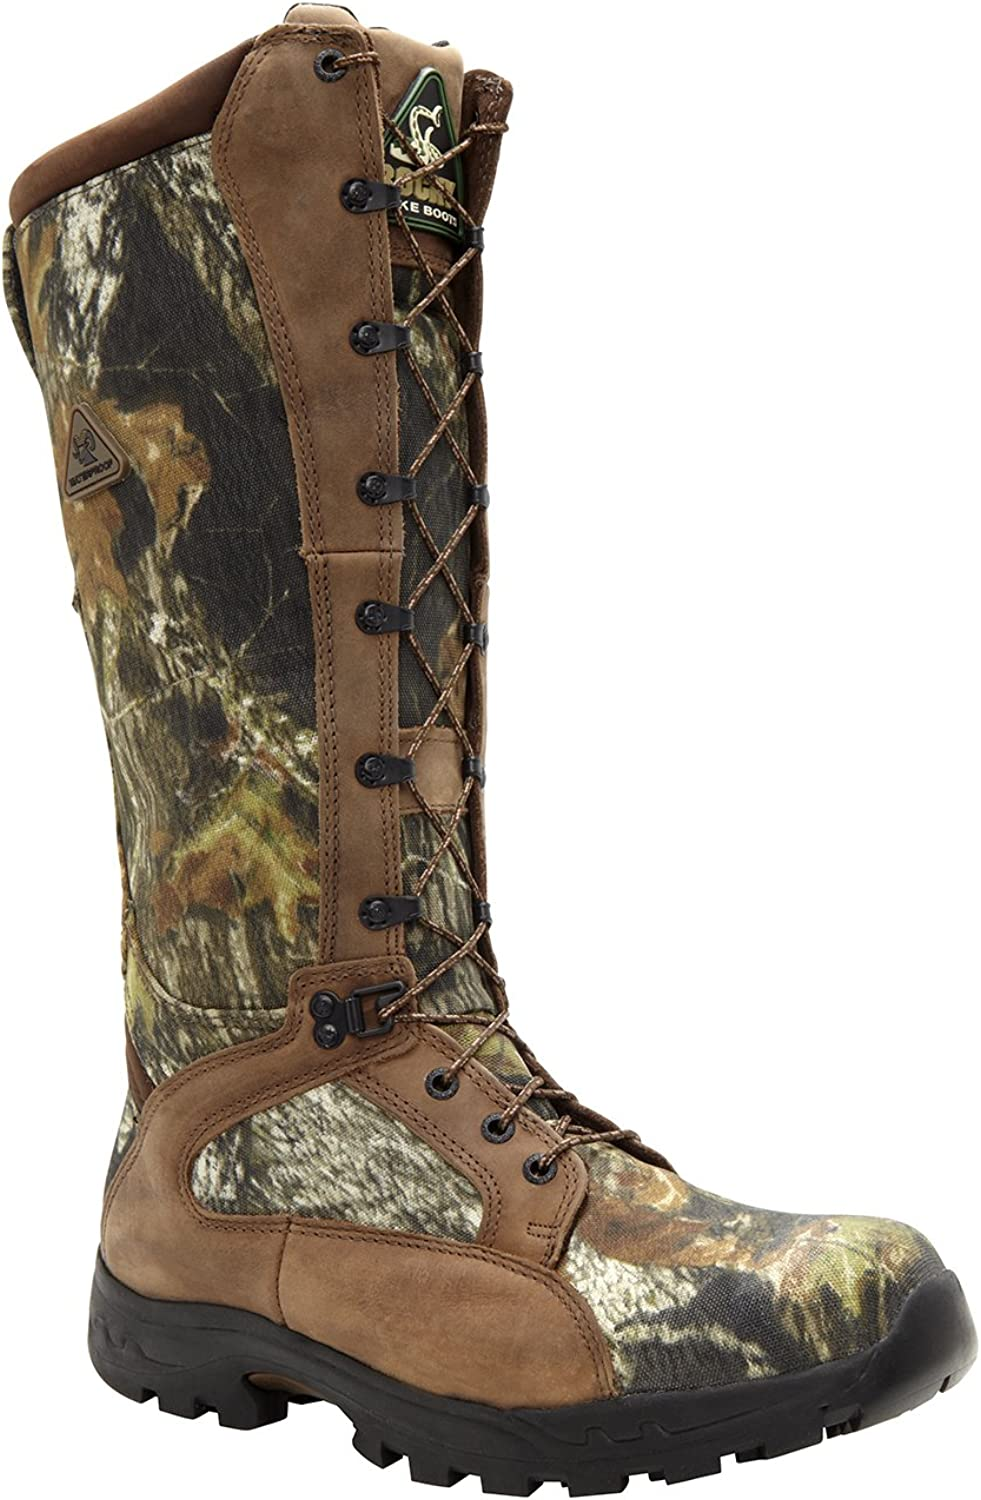 Rocky Men's 16  Prolight Waterproof Snake Proof Hunting Boot-1570 (M4.5) Brown